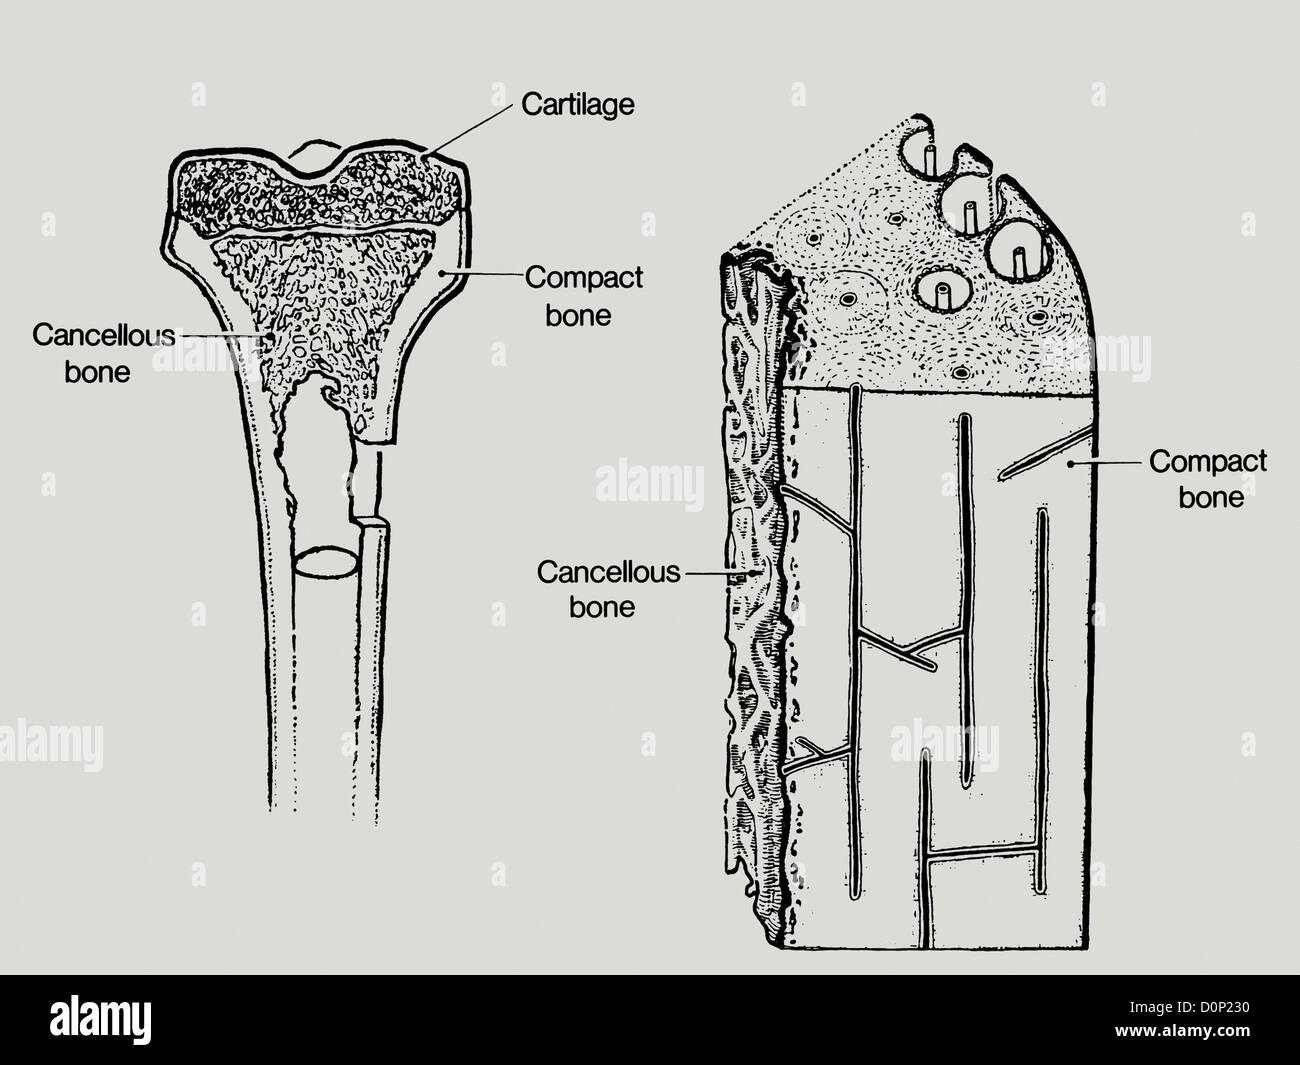 A line drawing showing the structure in bone, including cancellous or spongy bone, - Stock Image